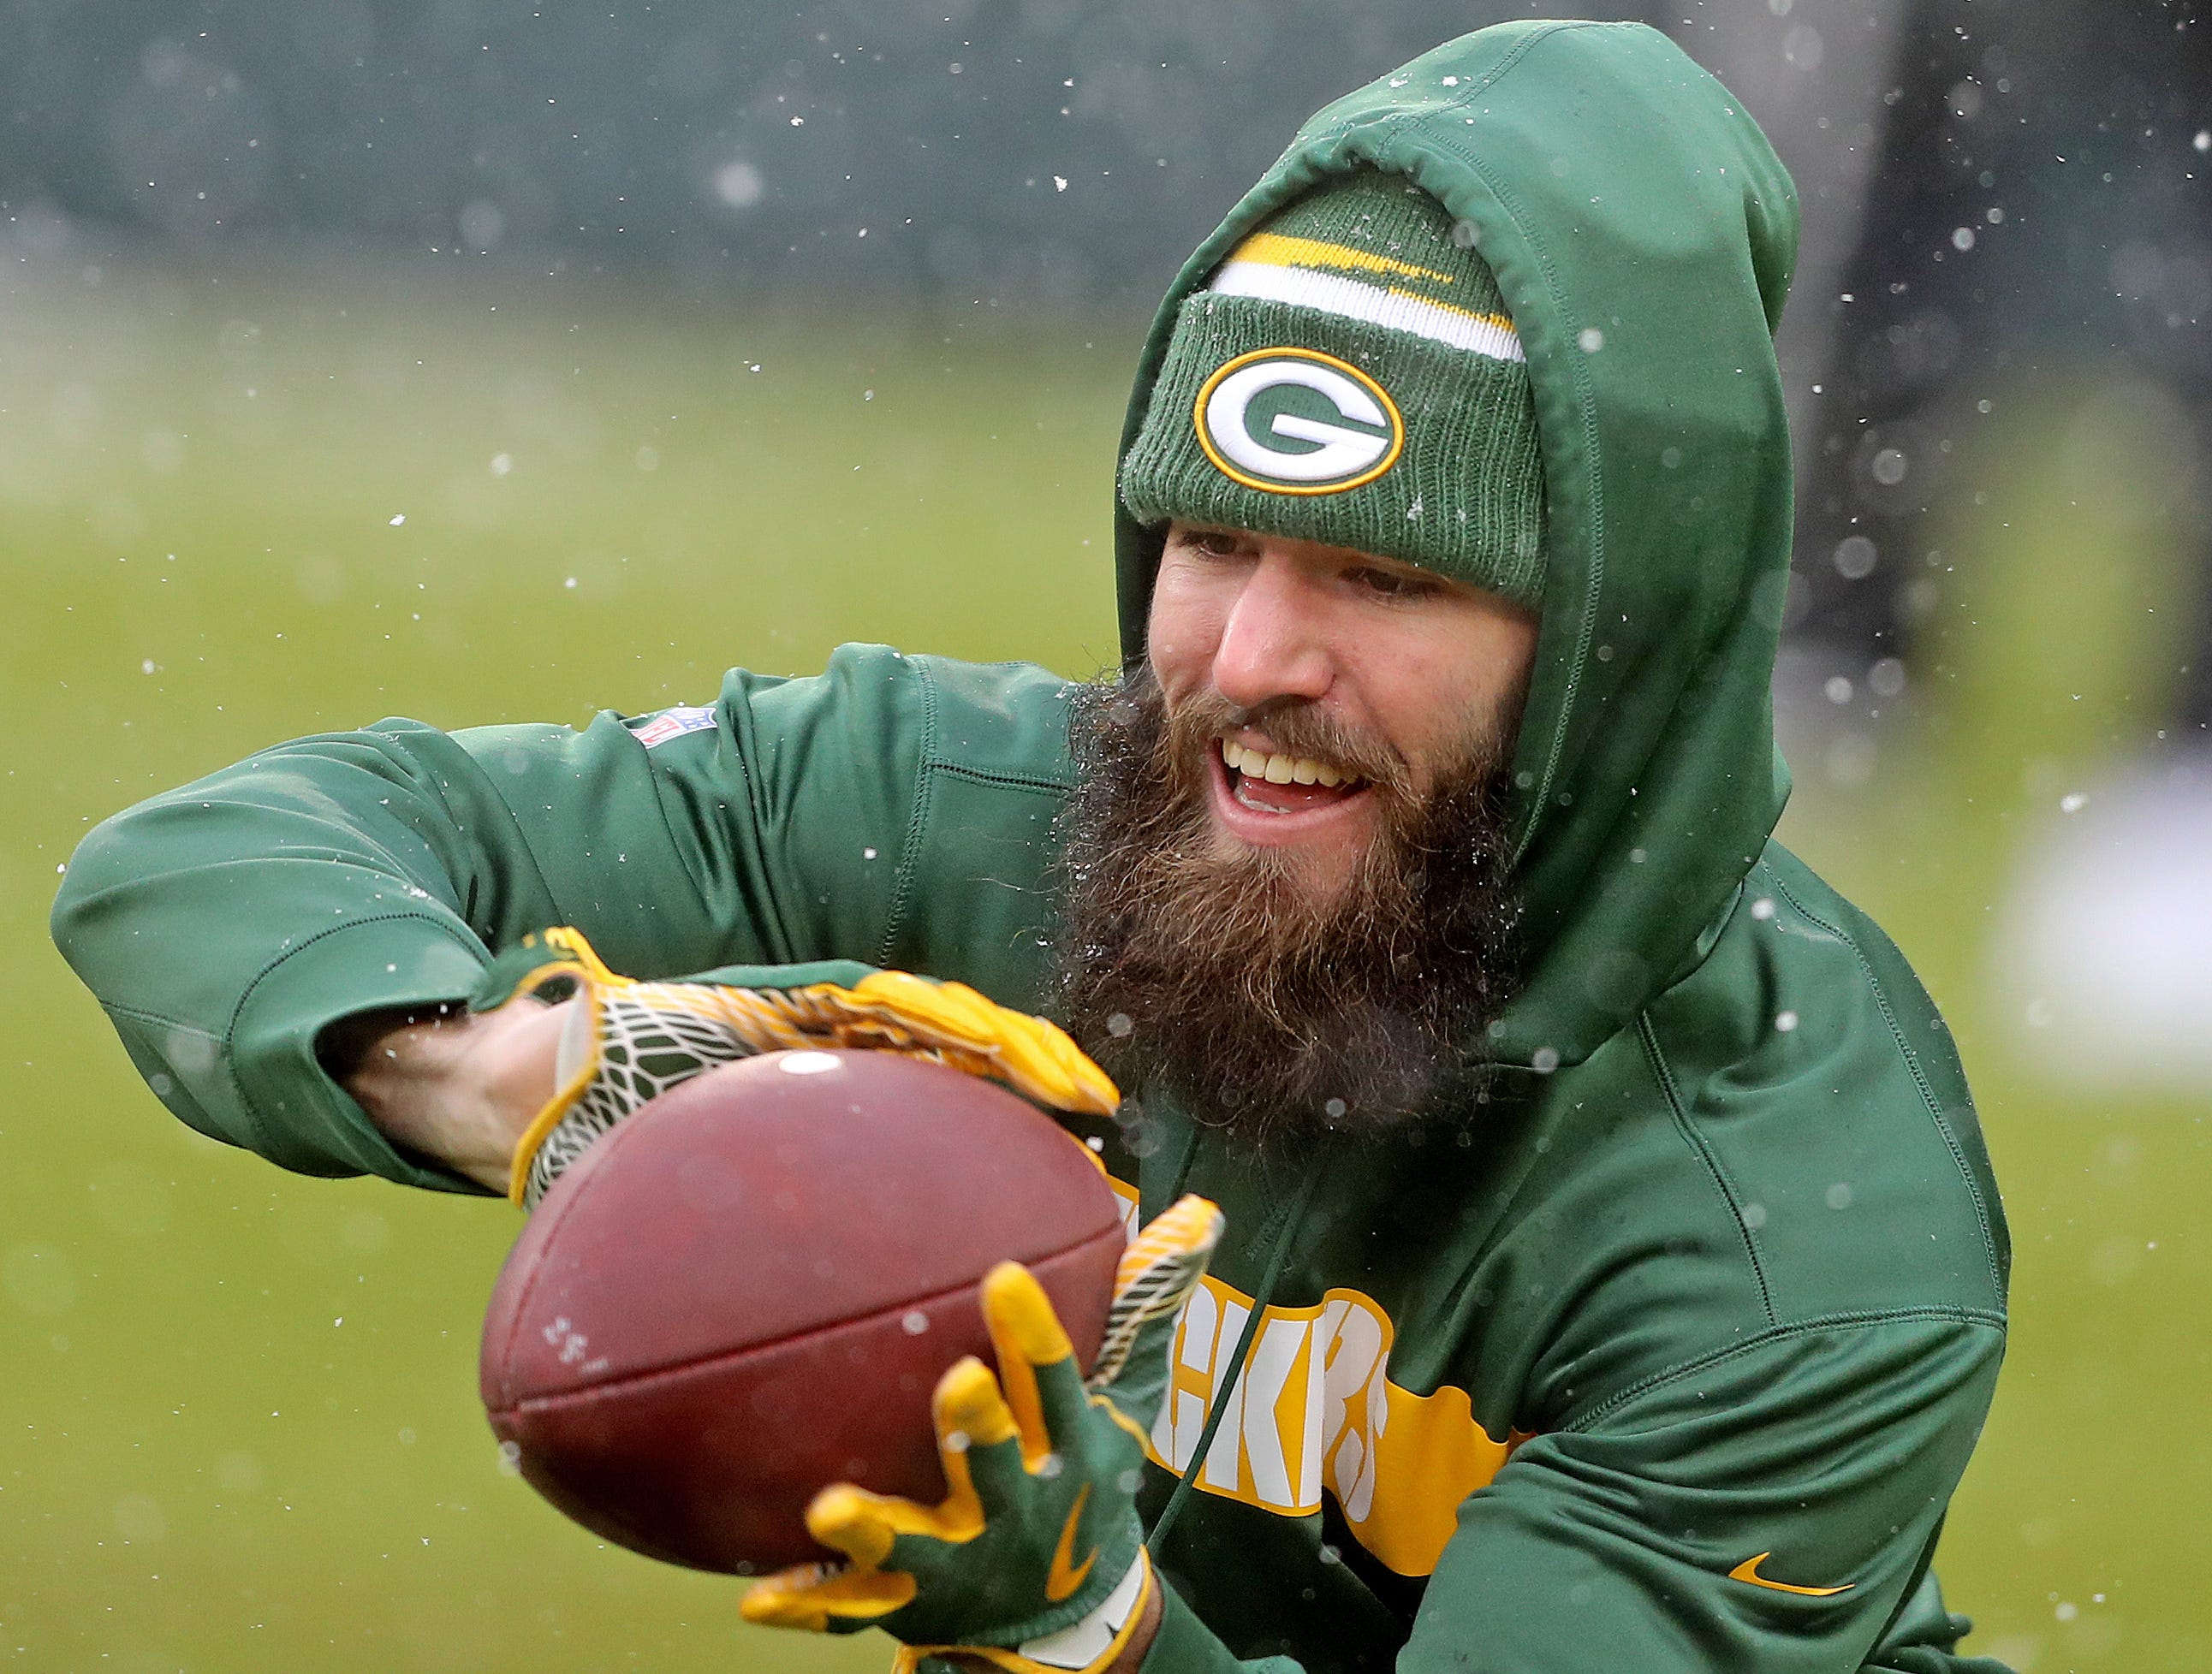 Green Bay Packers wide receiver Jake Kumerow (16) warms up before the game against the Arizona Cardinals Sunday, December 2, 2018 at Lambeau Field in Green Bay, Wis. Kumerow has just come back from injured reserve.